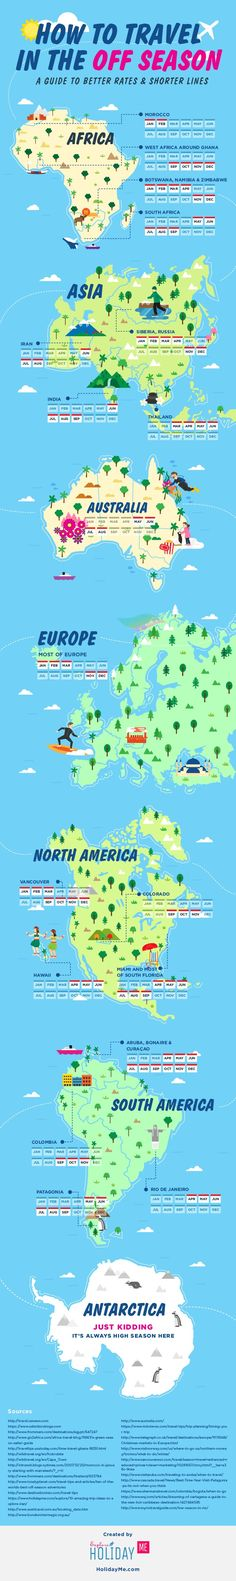 Affordable Vacation Spots: A Global Guide To Off-season Travel Infographic